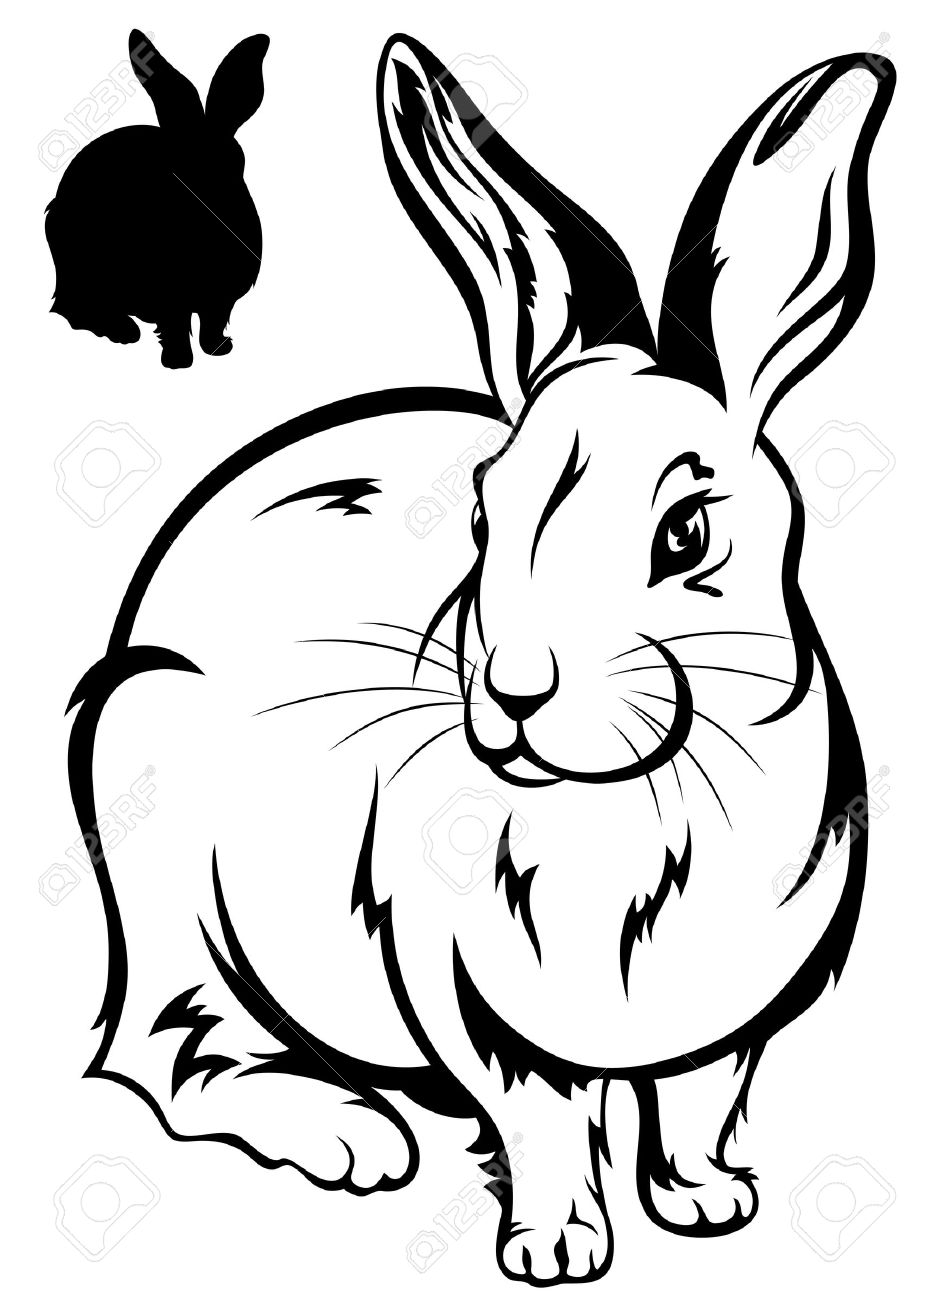 Easter Rabbit Outline Stock Photos & Pictures. Royalty Free Easter ...